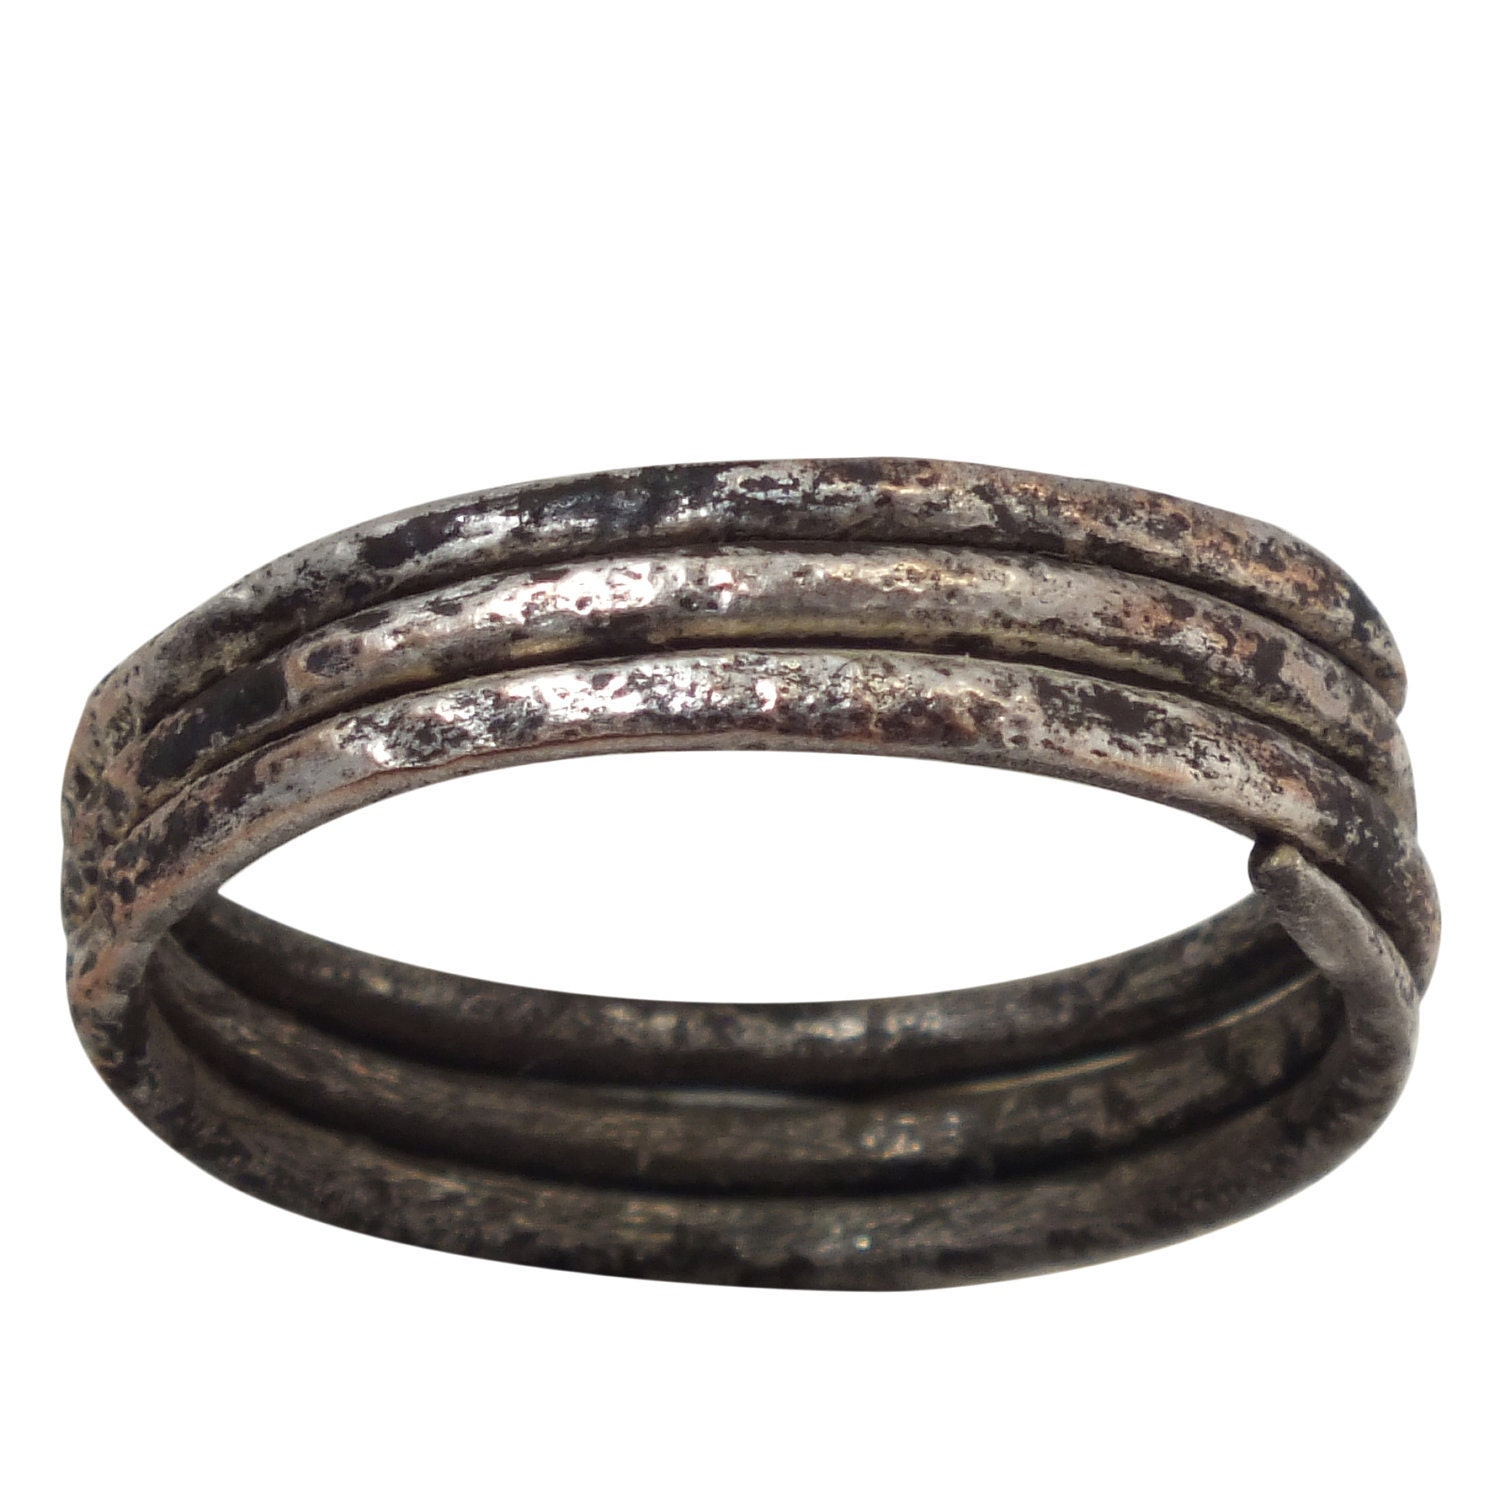 Viking Wedding Rings: Ancient Viking Mens Coil Wedding Ring 866-1067A.D. Size 9 1/2